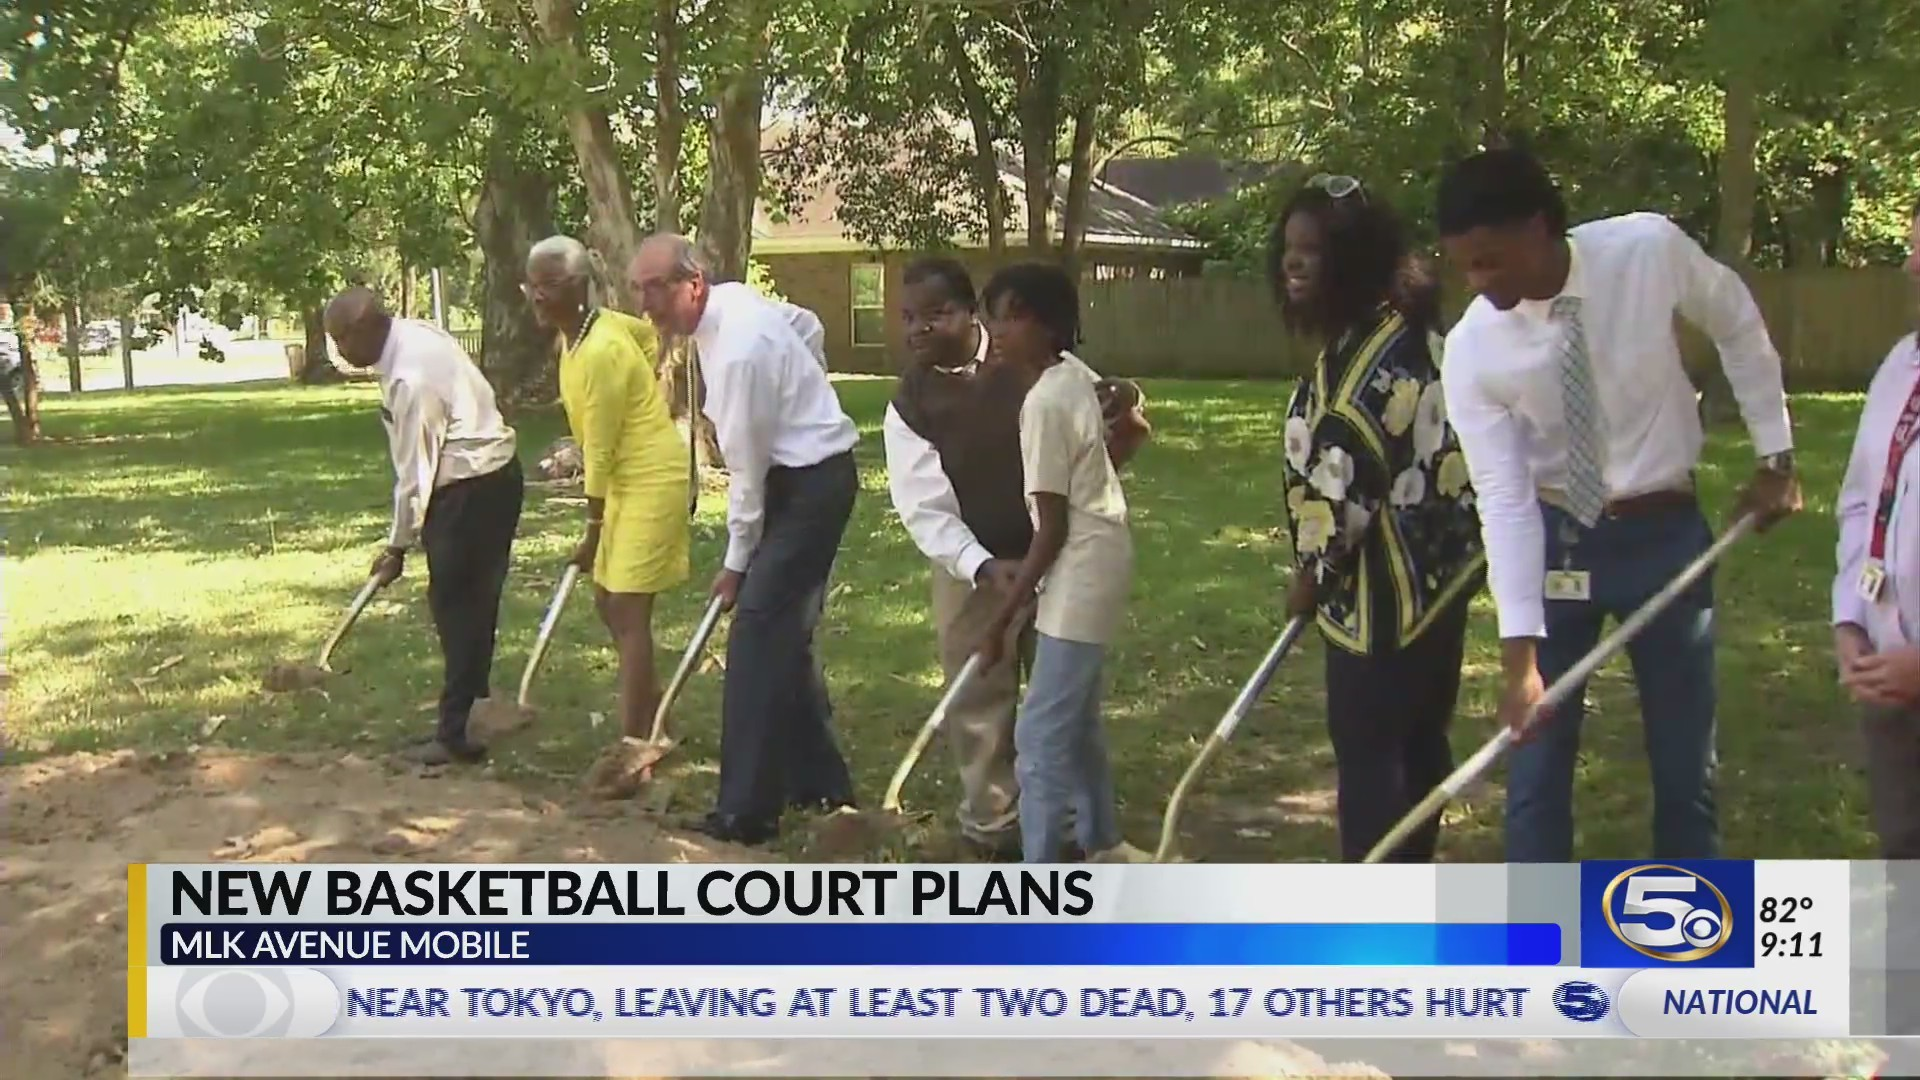 VIDEO: Mobile City and County leaders partner to build state-of-the-art basketball court on MLK Avenue